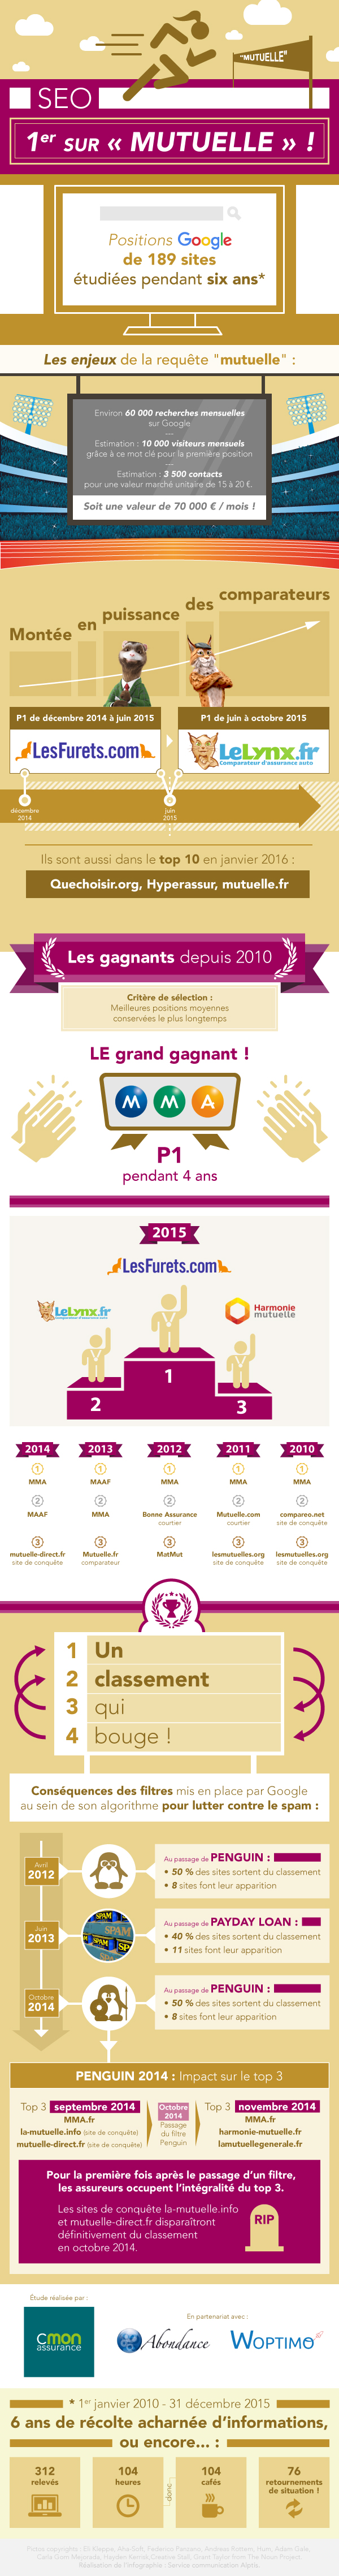 infographie_top20_mutuelle_201602